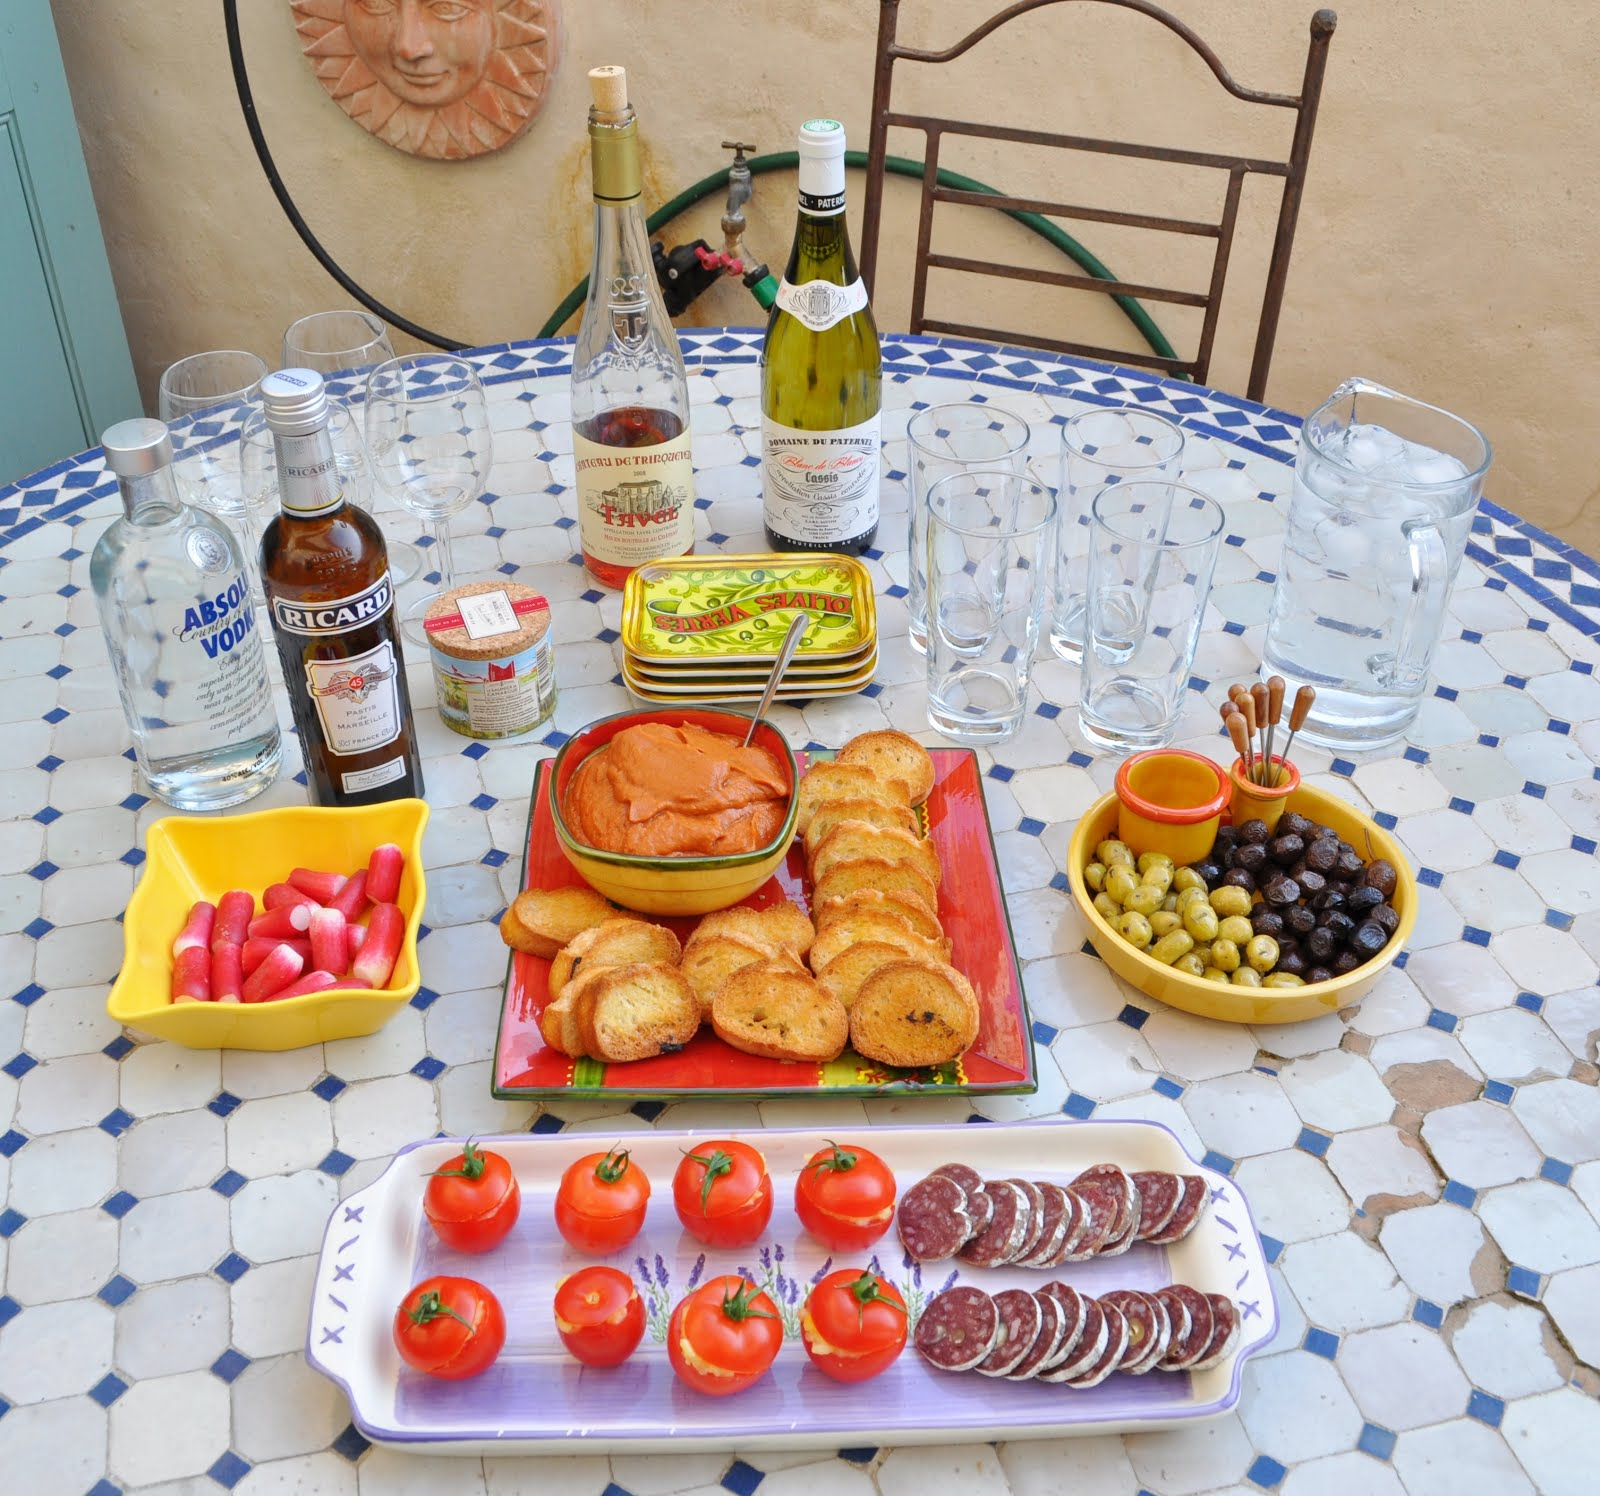 Our House In Provence: Aperitif, A Wonderful French Custom